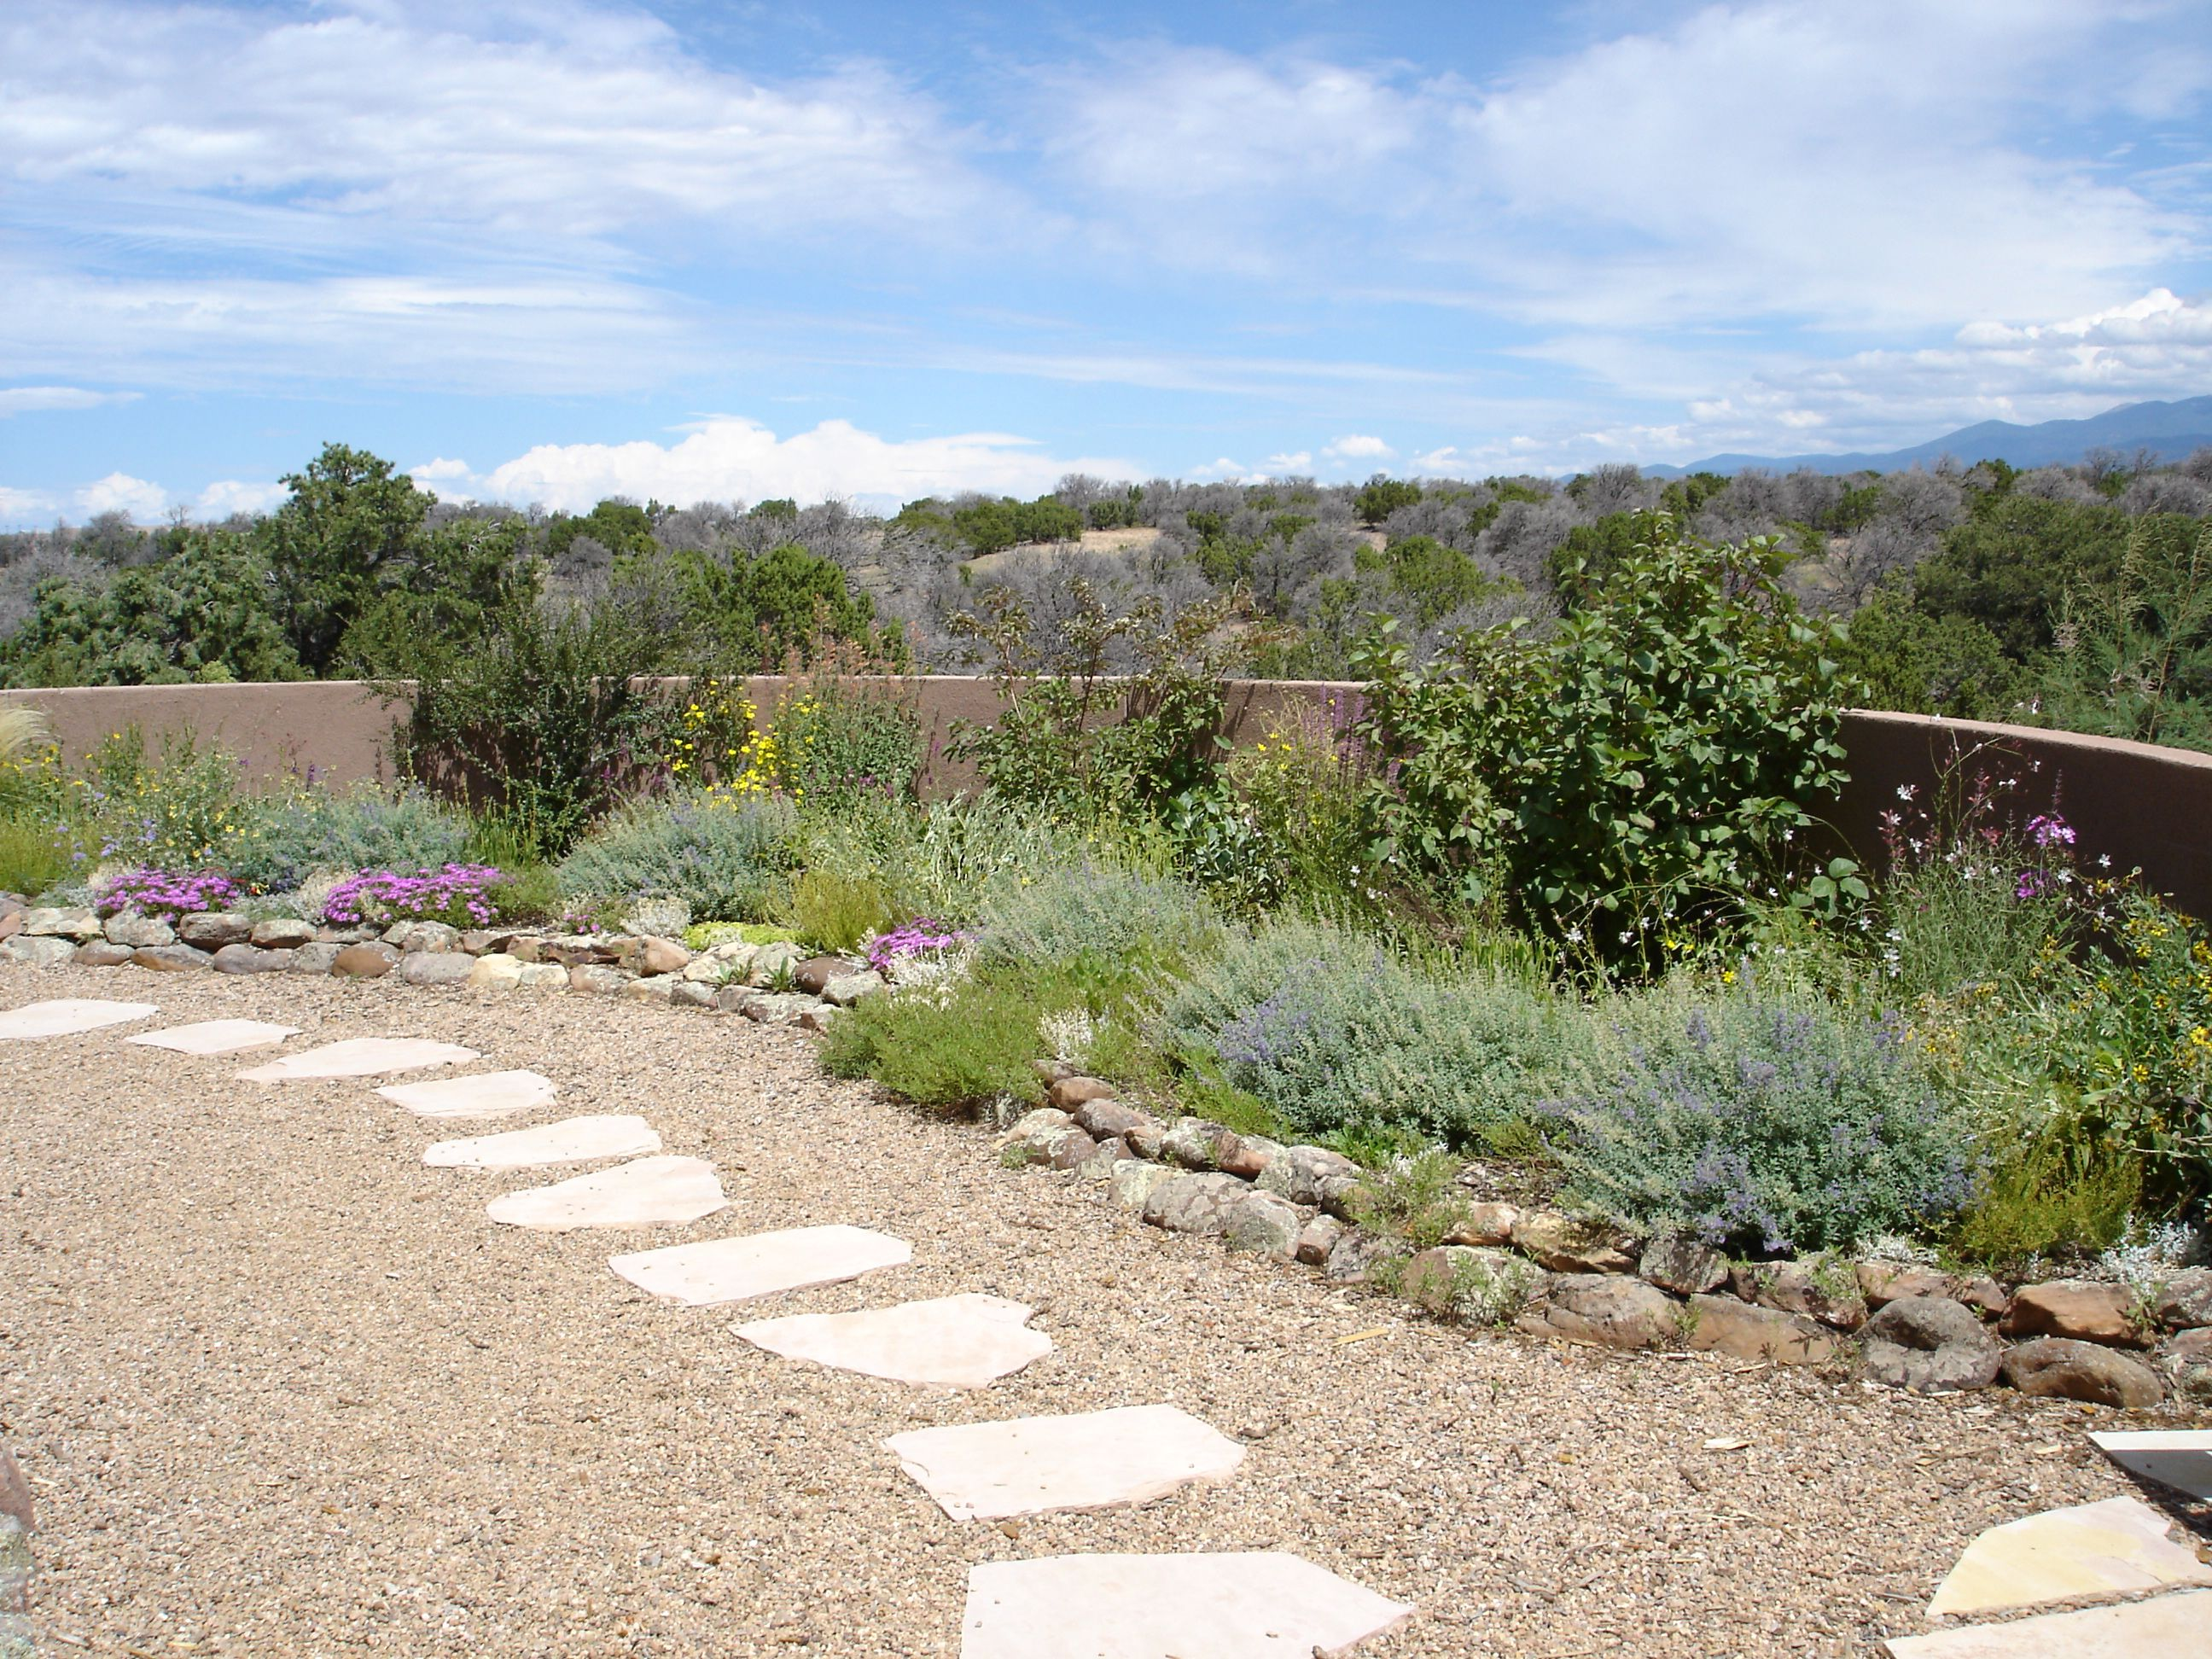 Xeriscaping | xeriscaping in santa fe xeriscaping is a method of ...